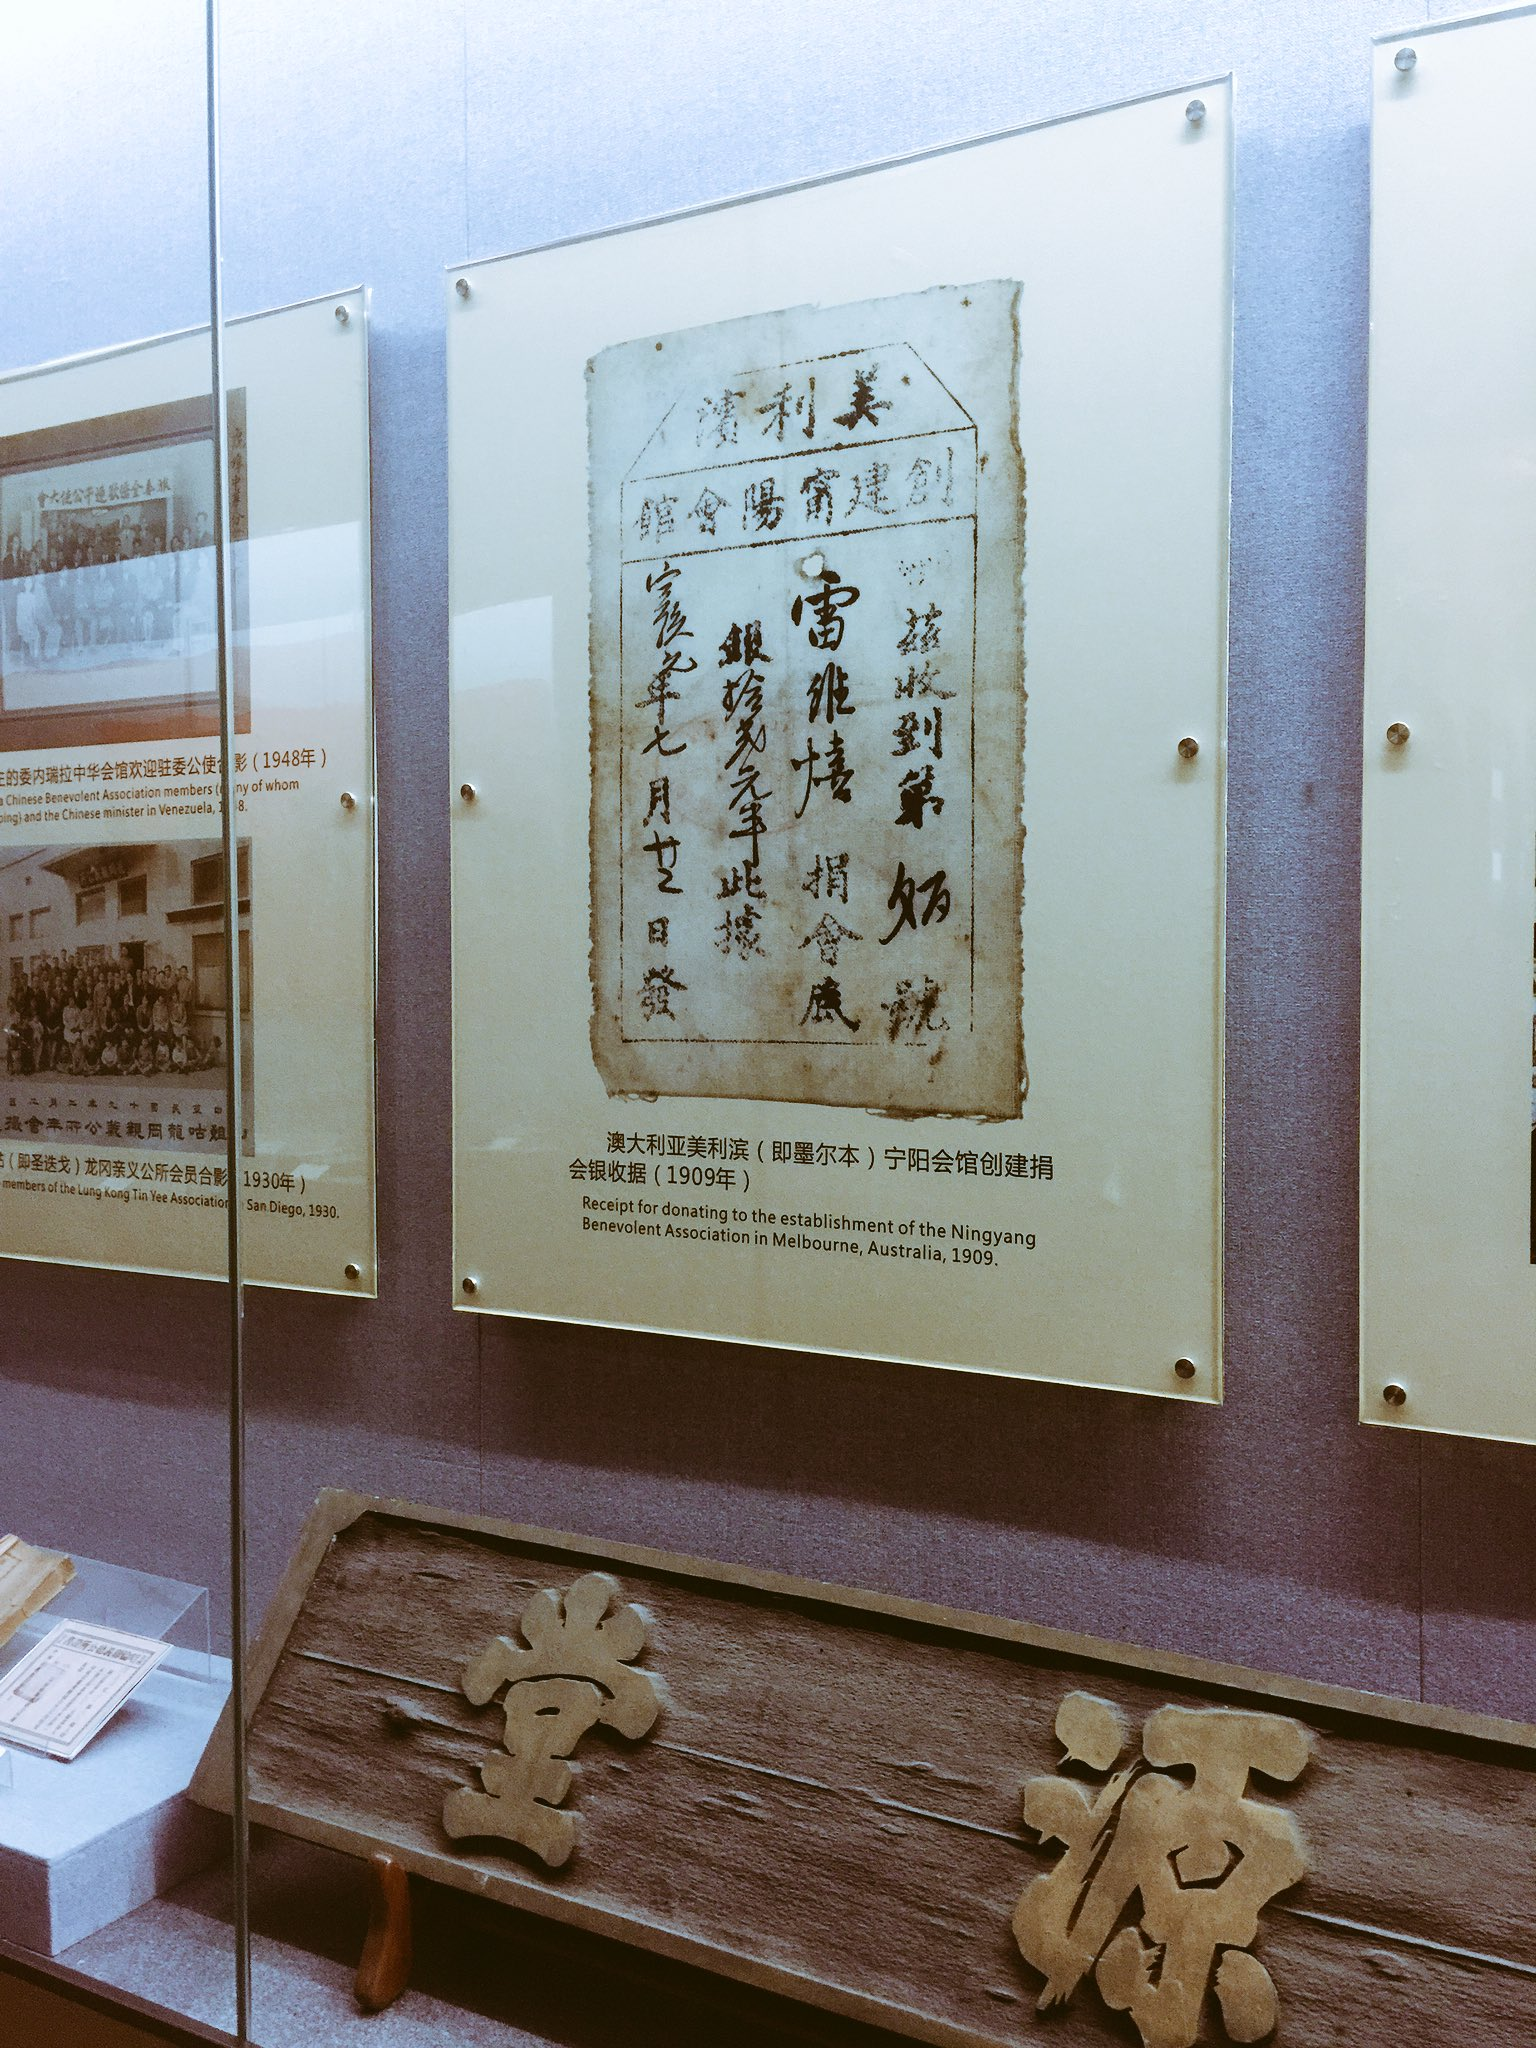 One of a handful of Australian exhibits in the Wuyi Overseas Chinese Museum. #cahht17 https://t.co/FUeDYsUUqQ